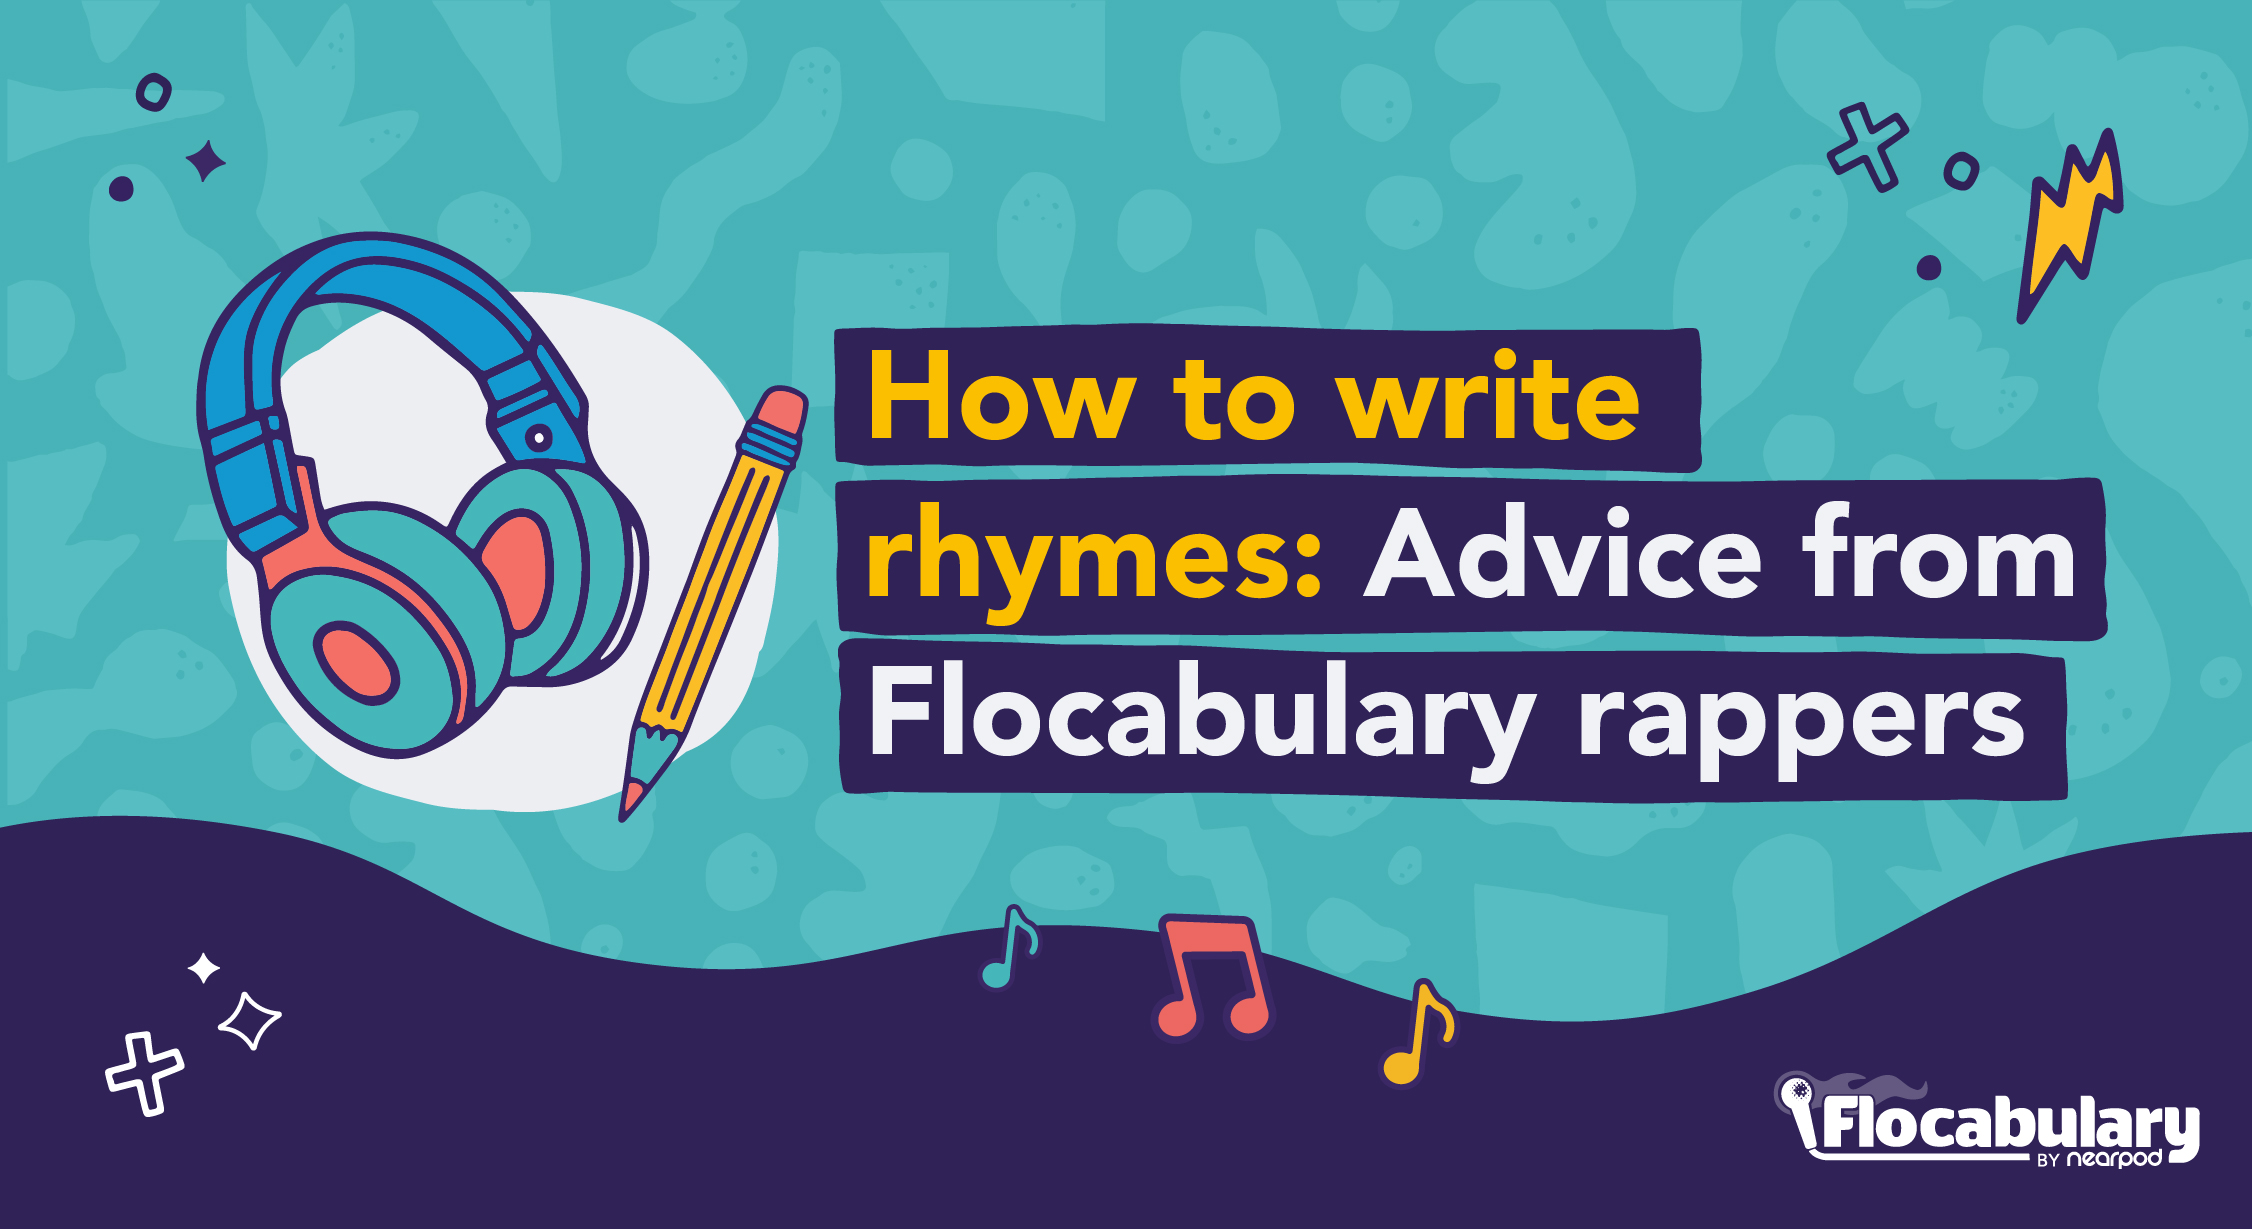 How To Write Rhymes: Advice From Flocabulary Rappers